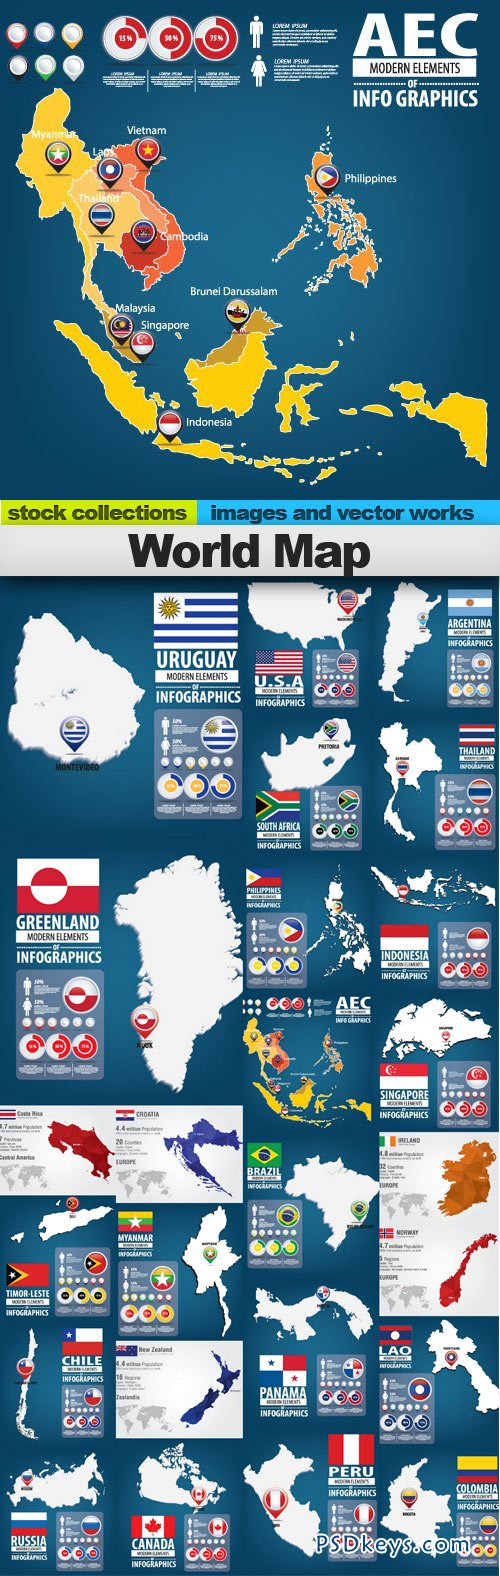 World map 25xeps free download photoshop vector stock image via world map 25xeps gumiabroncs Images